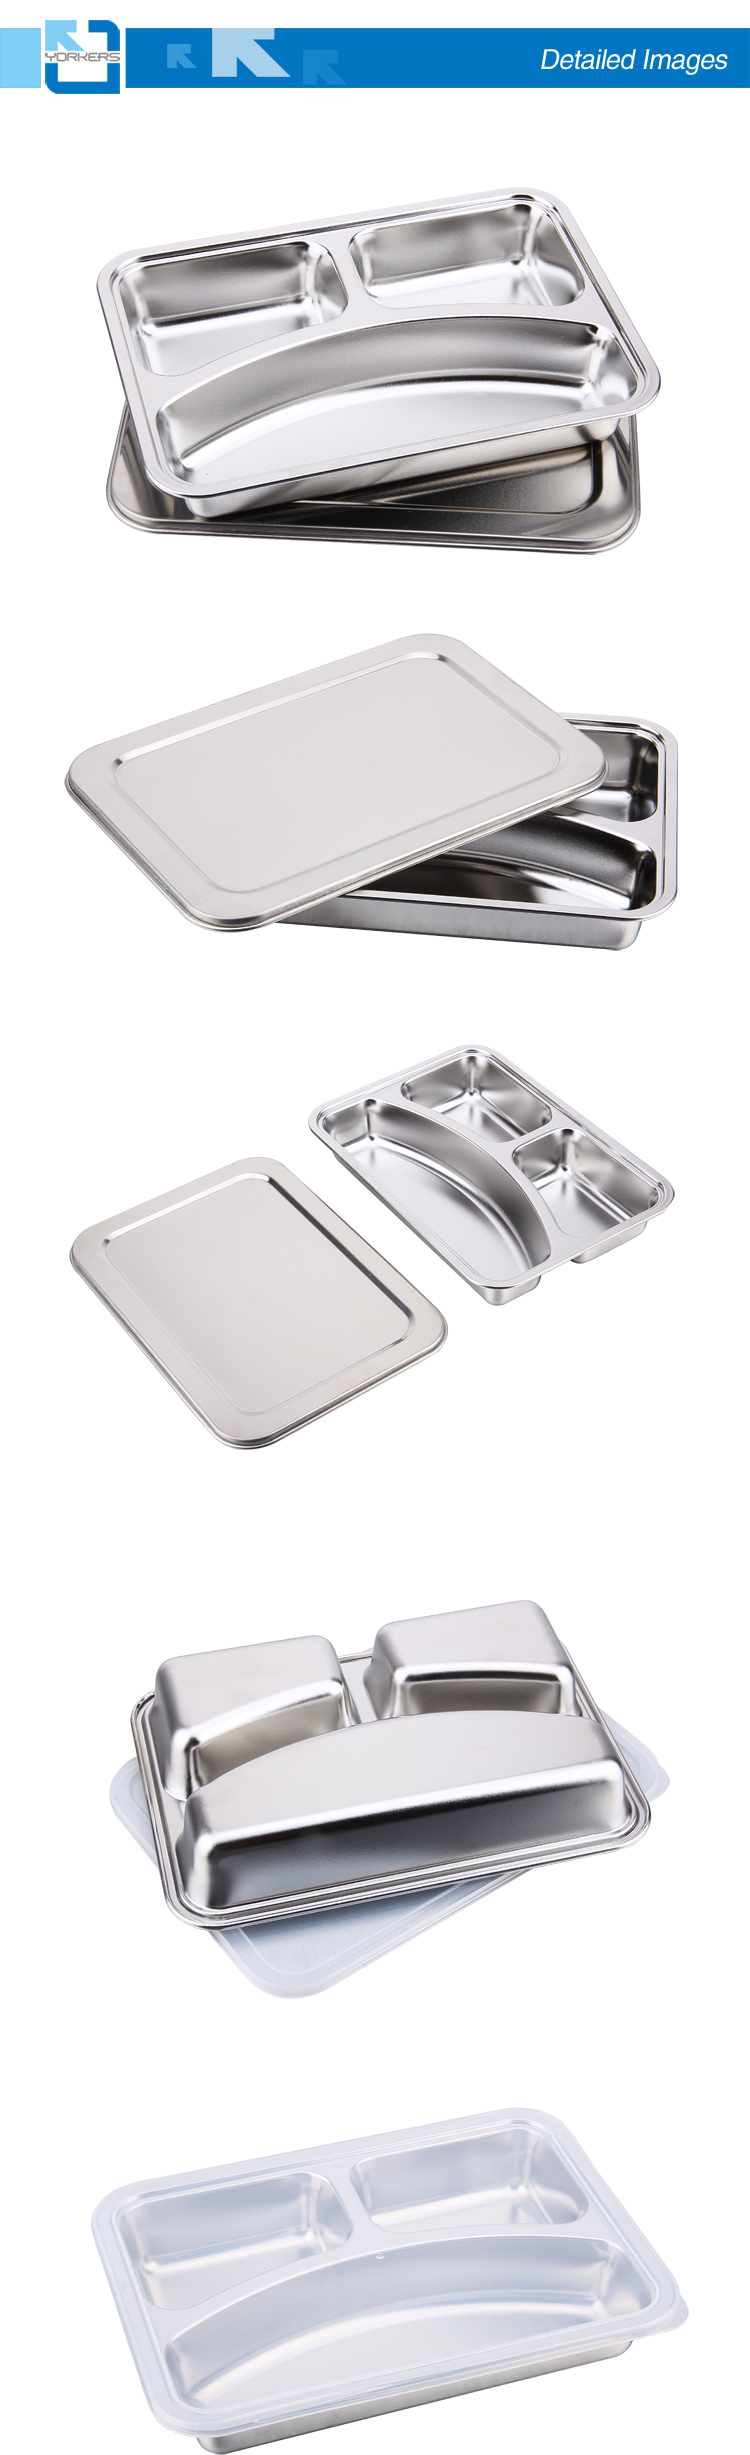 3 Compartment Stainless Steel Food Tray Plate for Kids